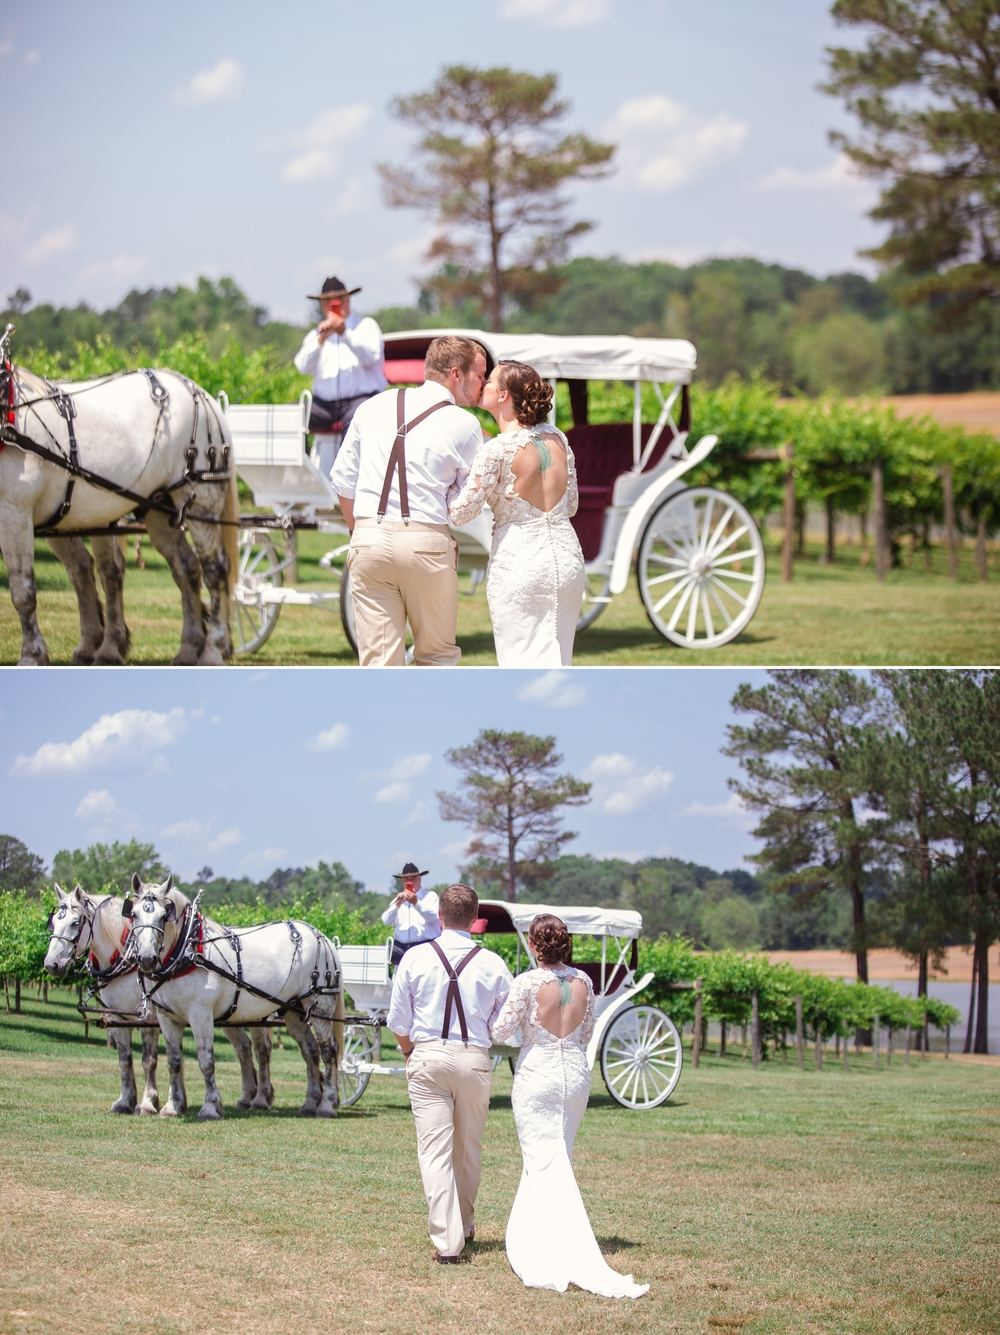 Gregory Vineyard Wedding Photographer in Fayetteville, North Carolina